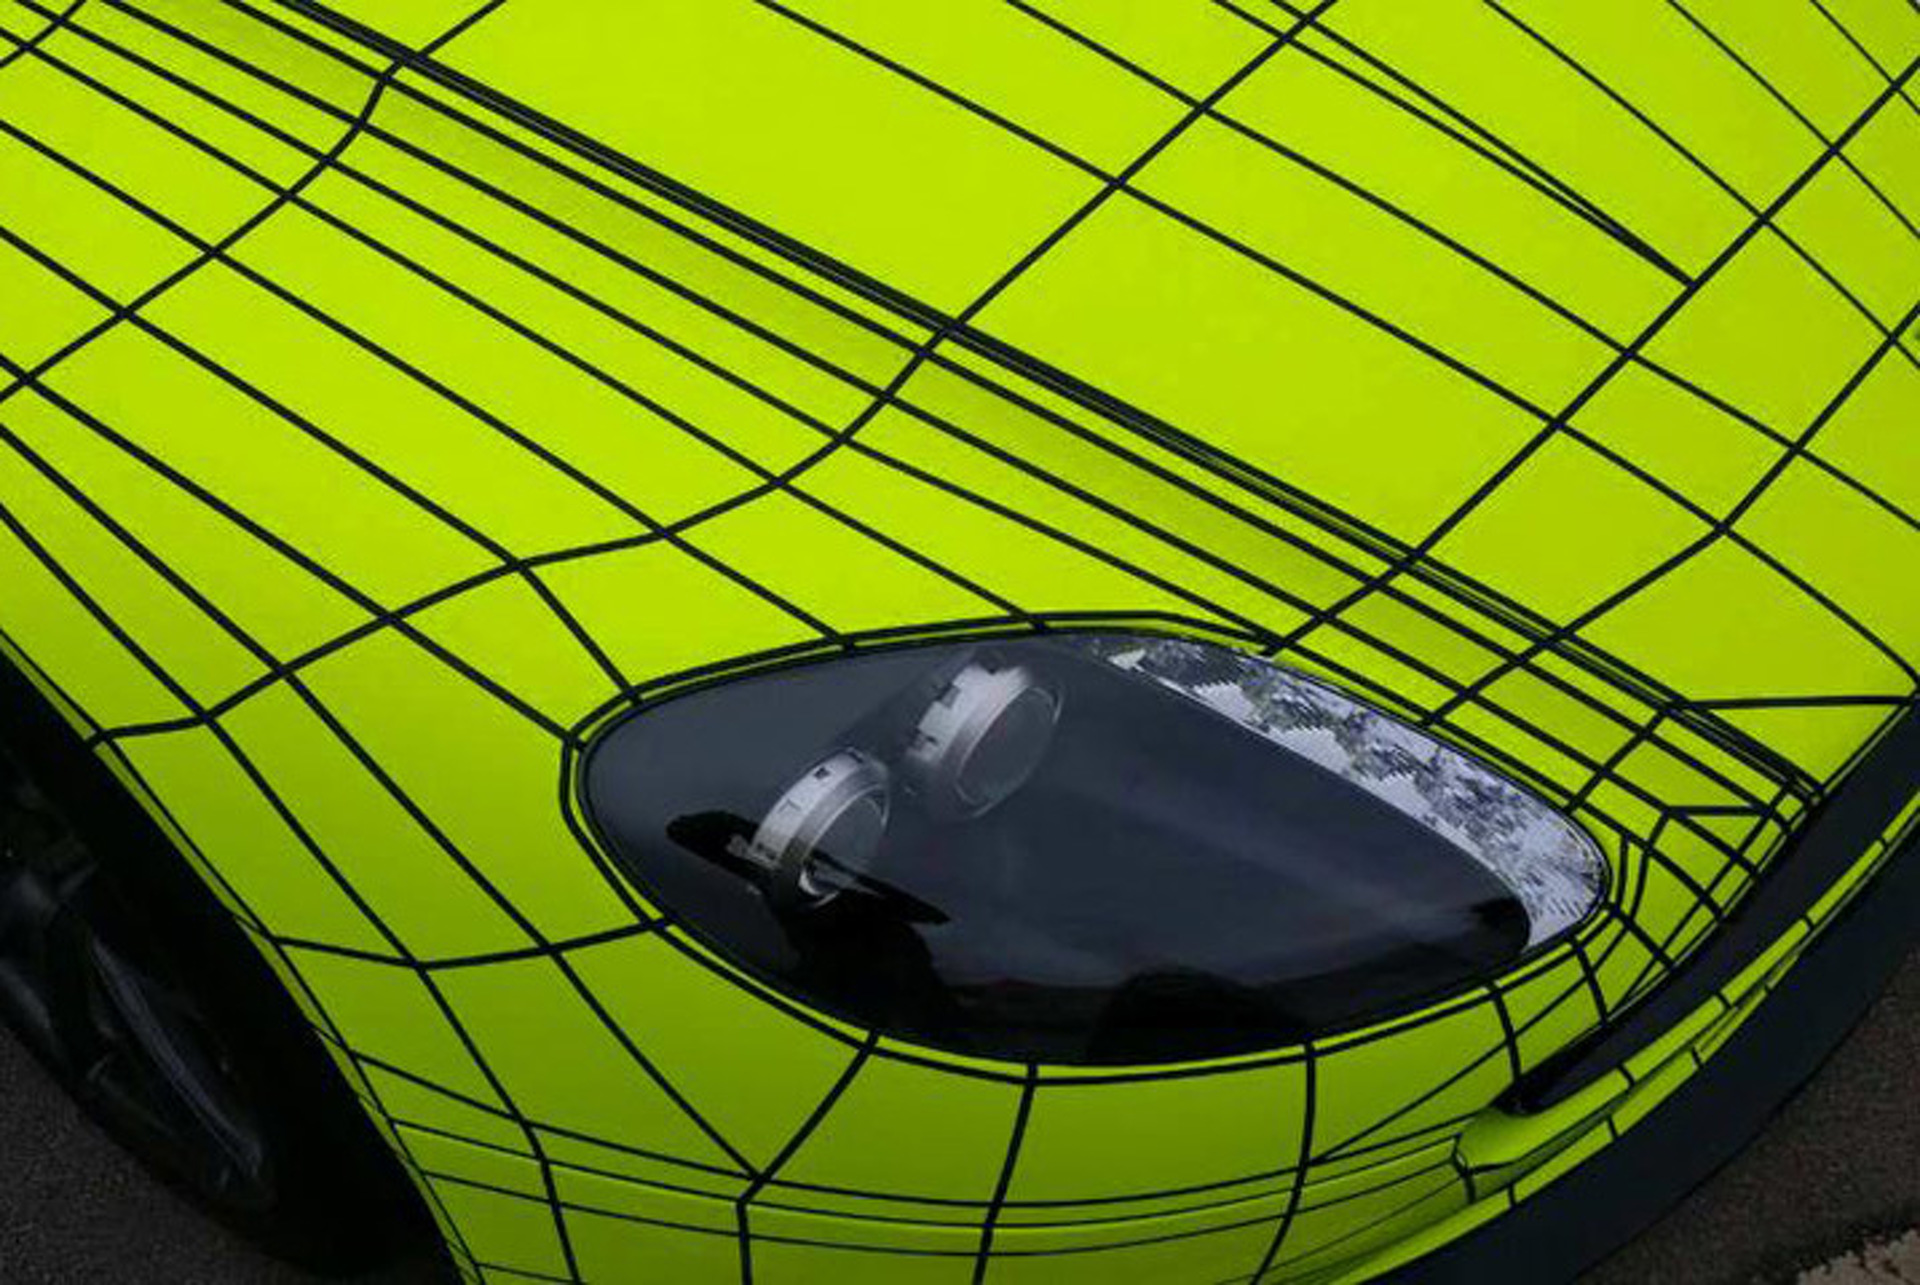 Fluorescent Aston Martin Vantage Wrap Actually Looks Good